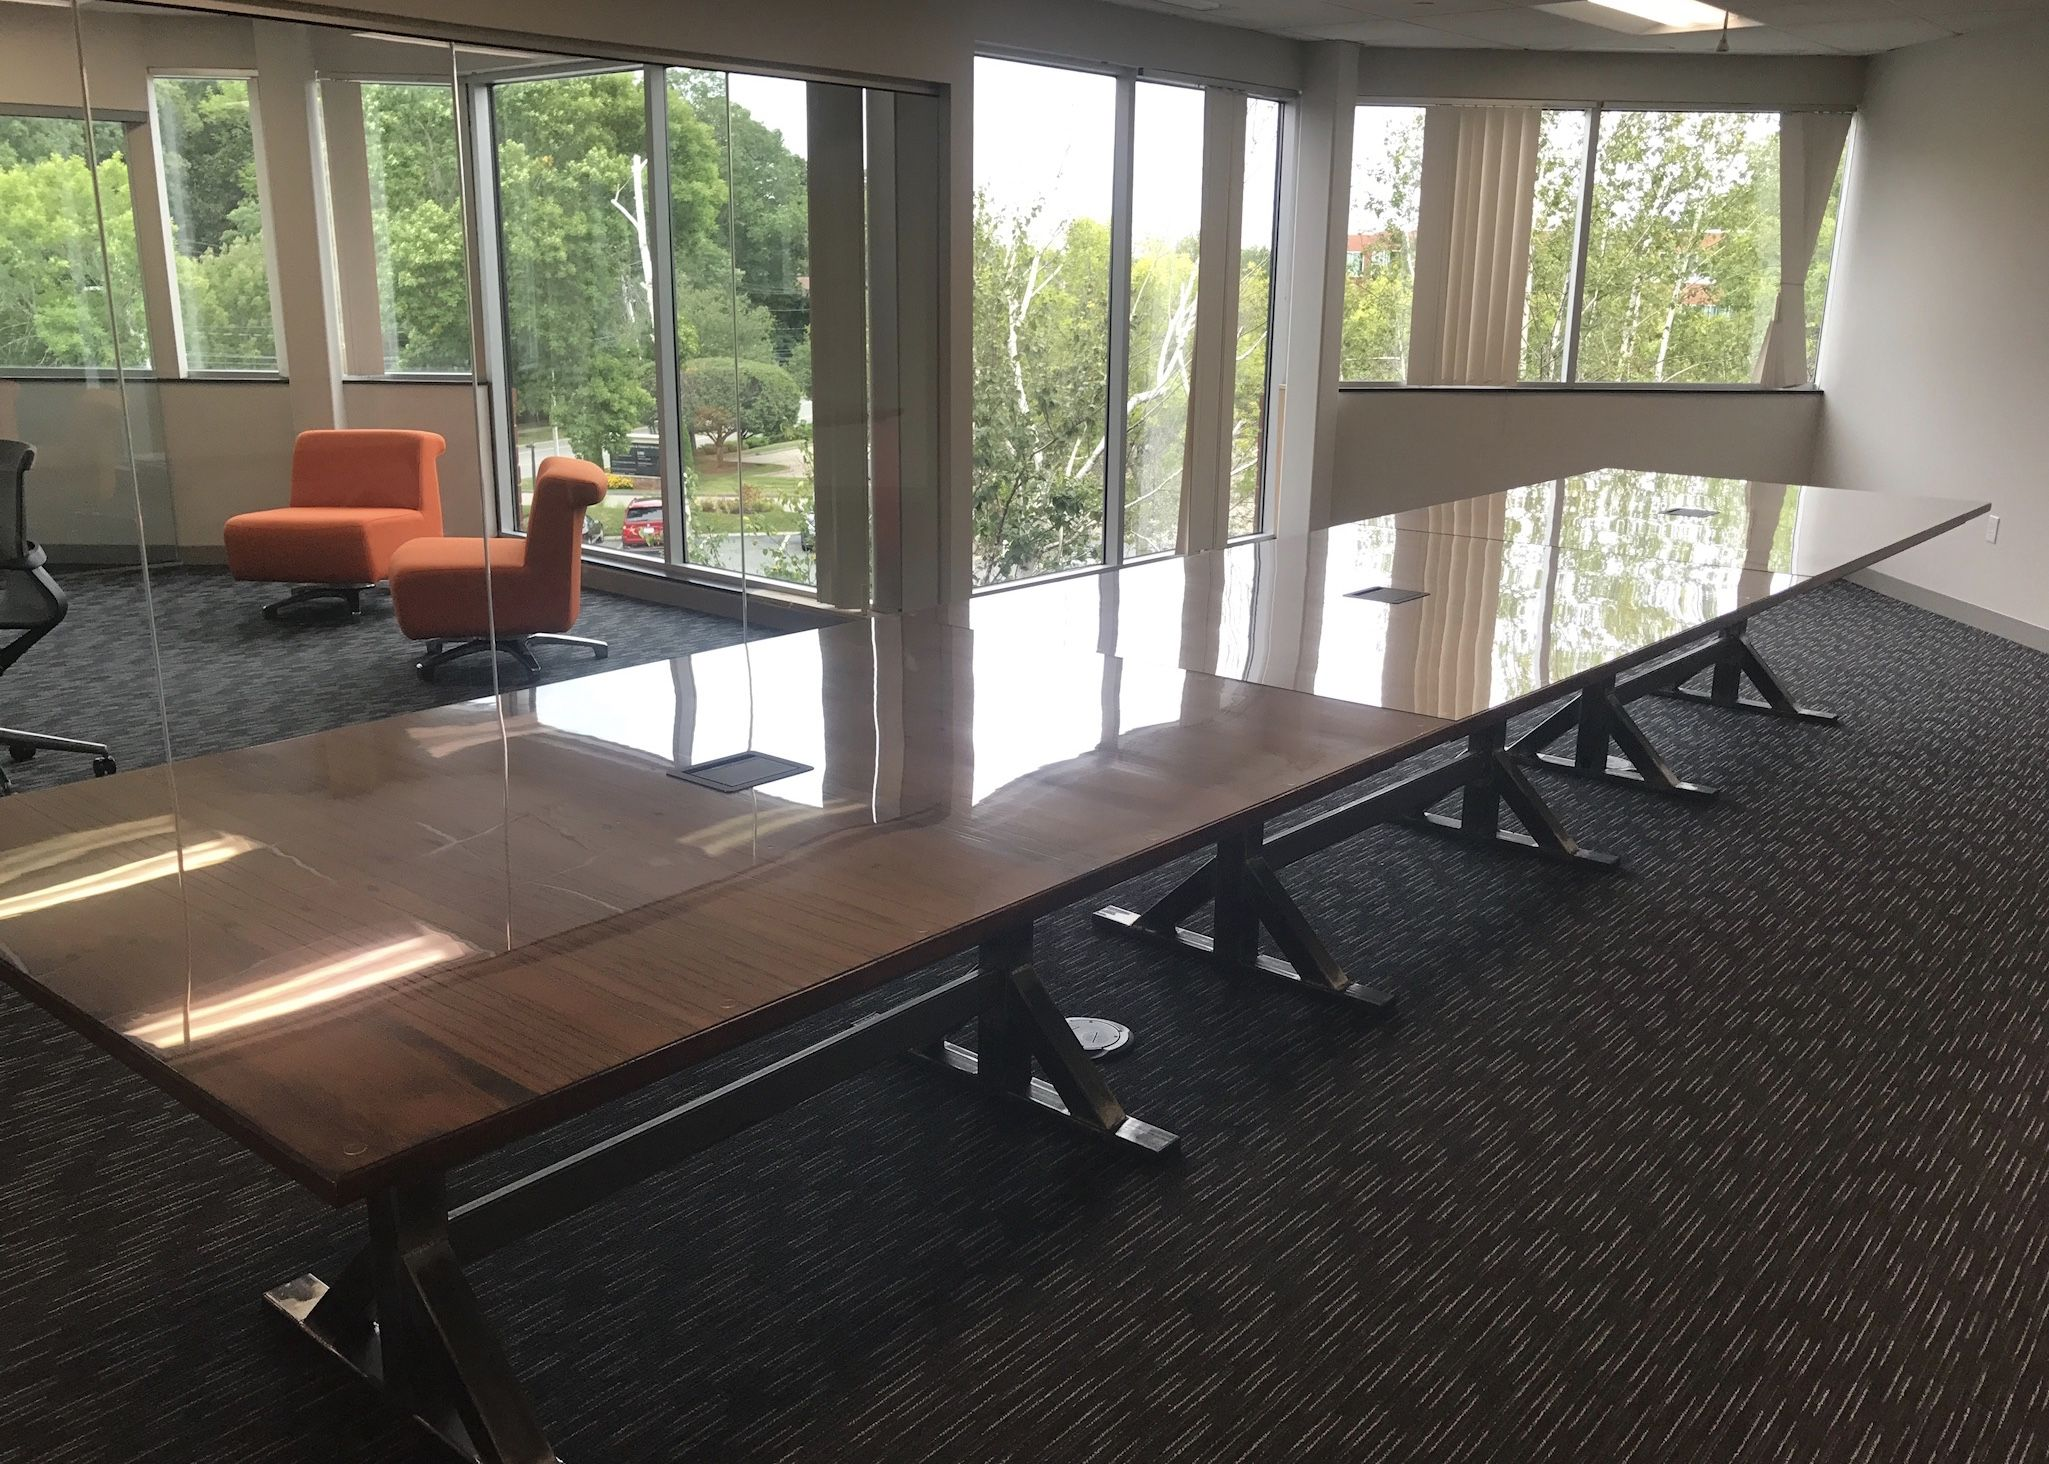 Hand Crafted Foot Long Conference Table By Maker Woodworker - 20 foot conference table